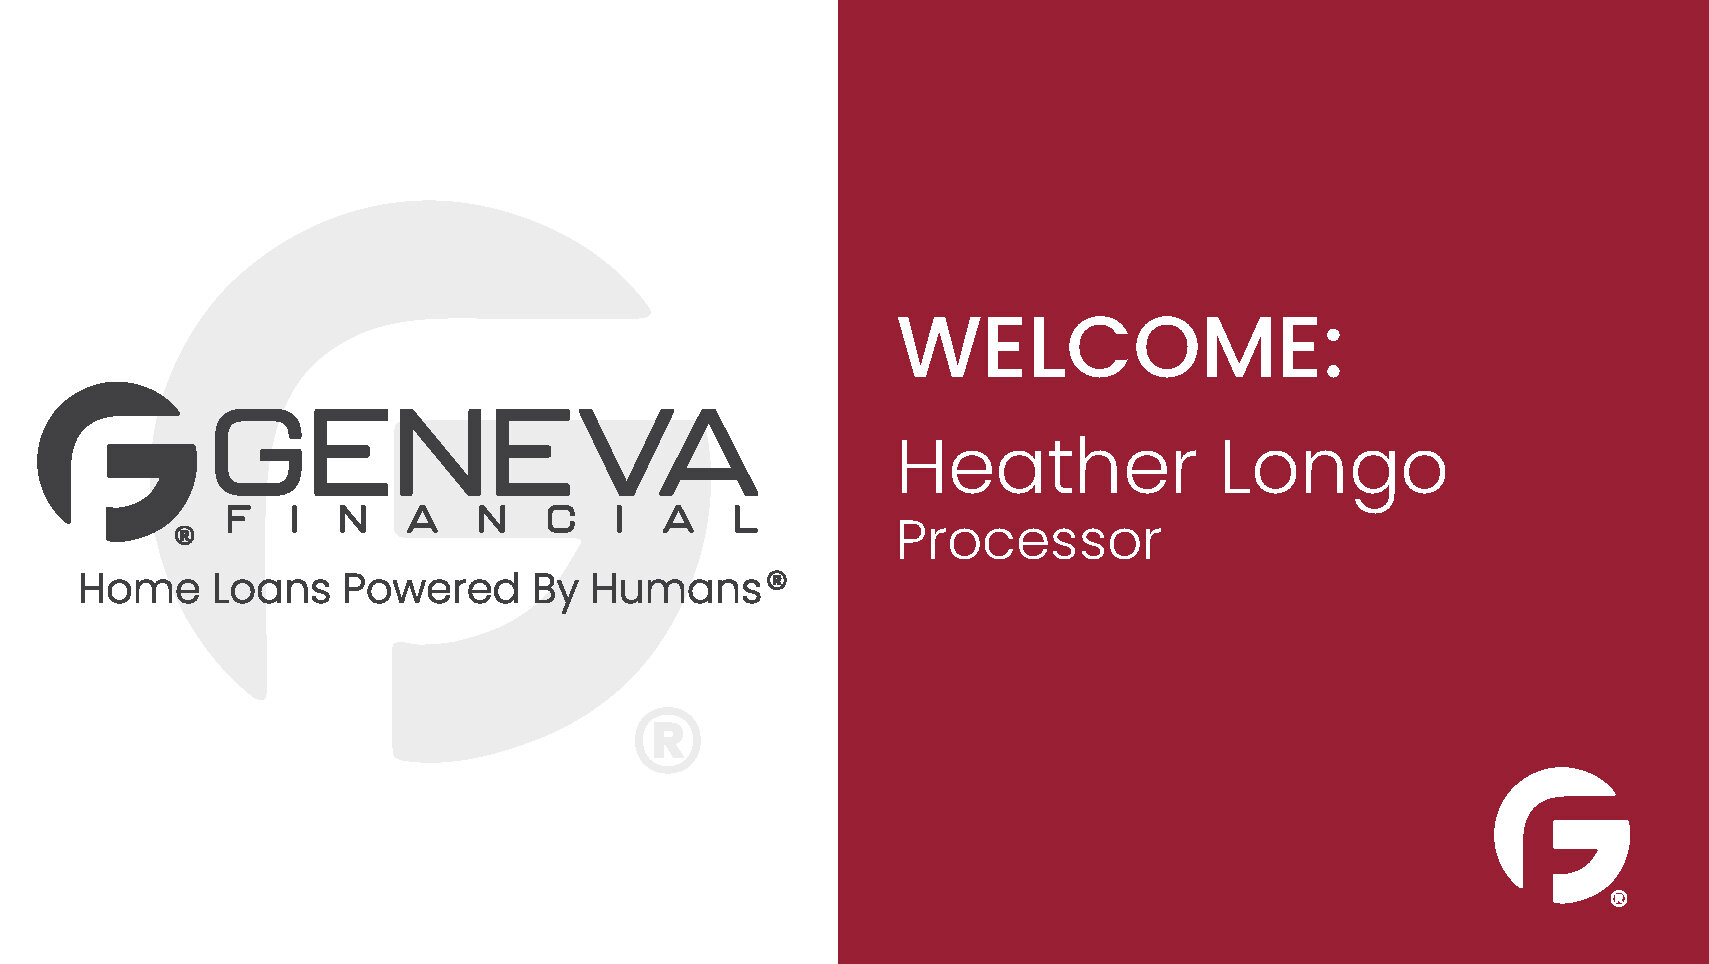 Heather Longo Welcome-01.jpg